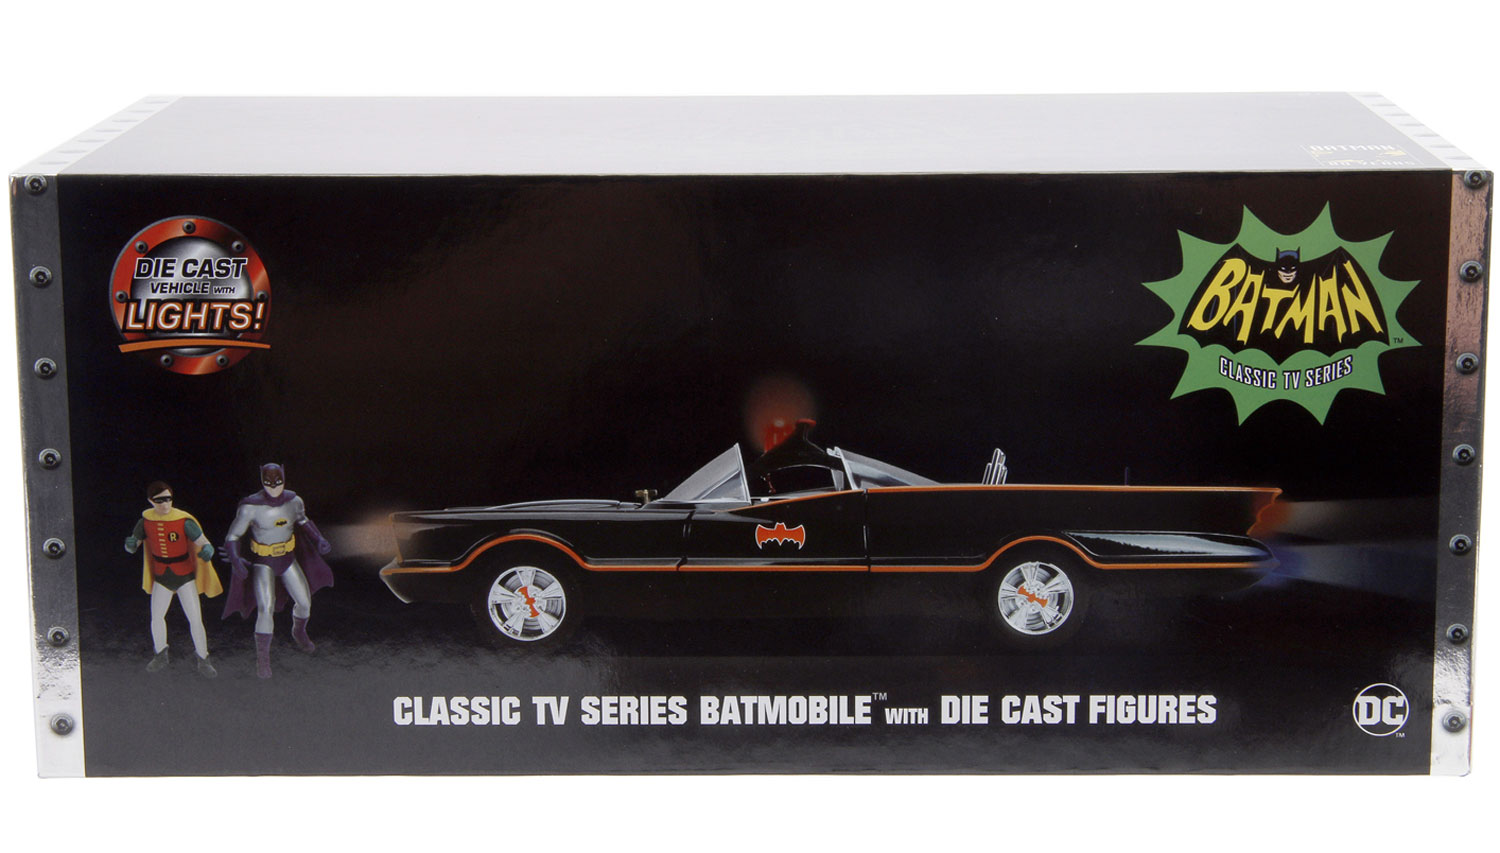 Metals Batmobile Vehicle With Figure: Batman Classic TV Series  (1/18 Scale) -